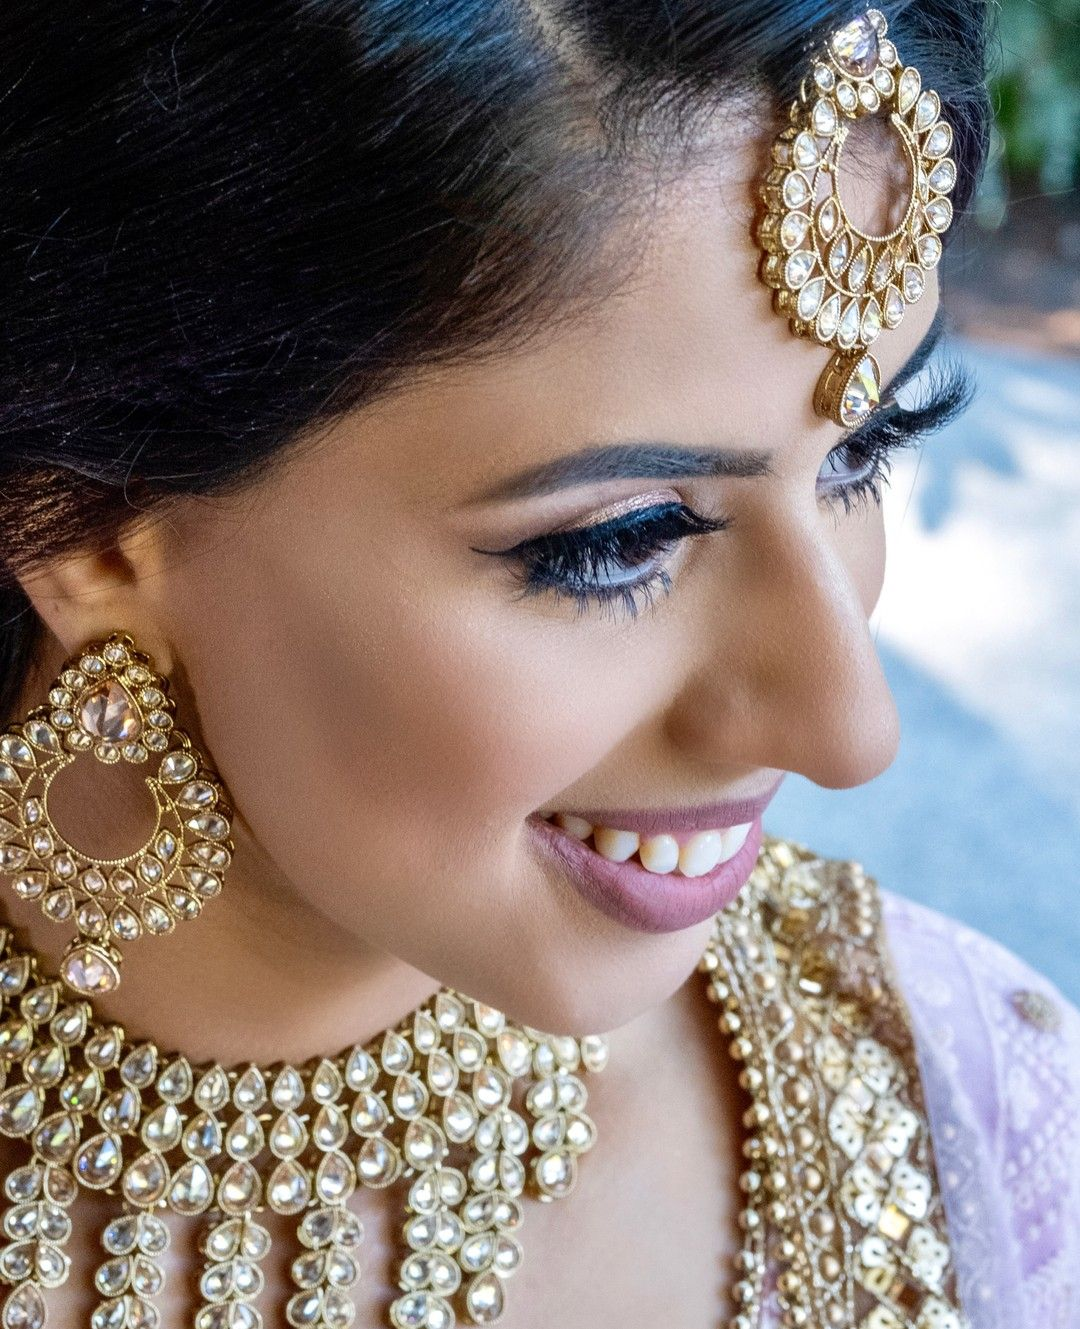 Our Beautiful Client Gurveen On Her Engagement Lashes Madeinlondonstudio Carnab In 2020 Bridal Hair And Makeup Bridal Makeup Artist Artistic Hair